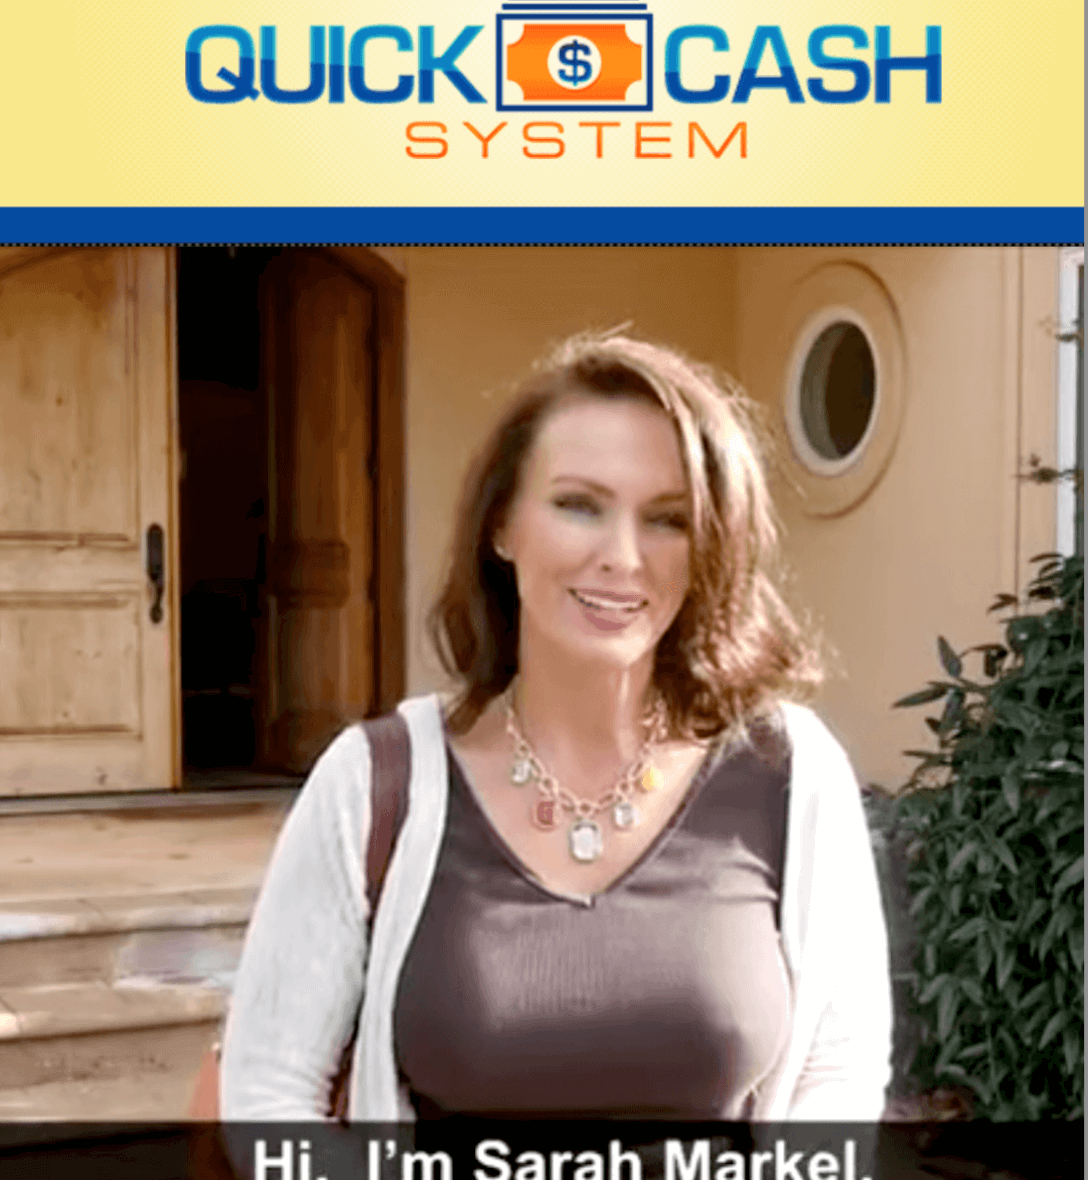 Quick cash system wikipedia